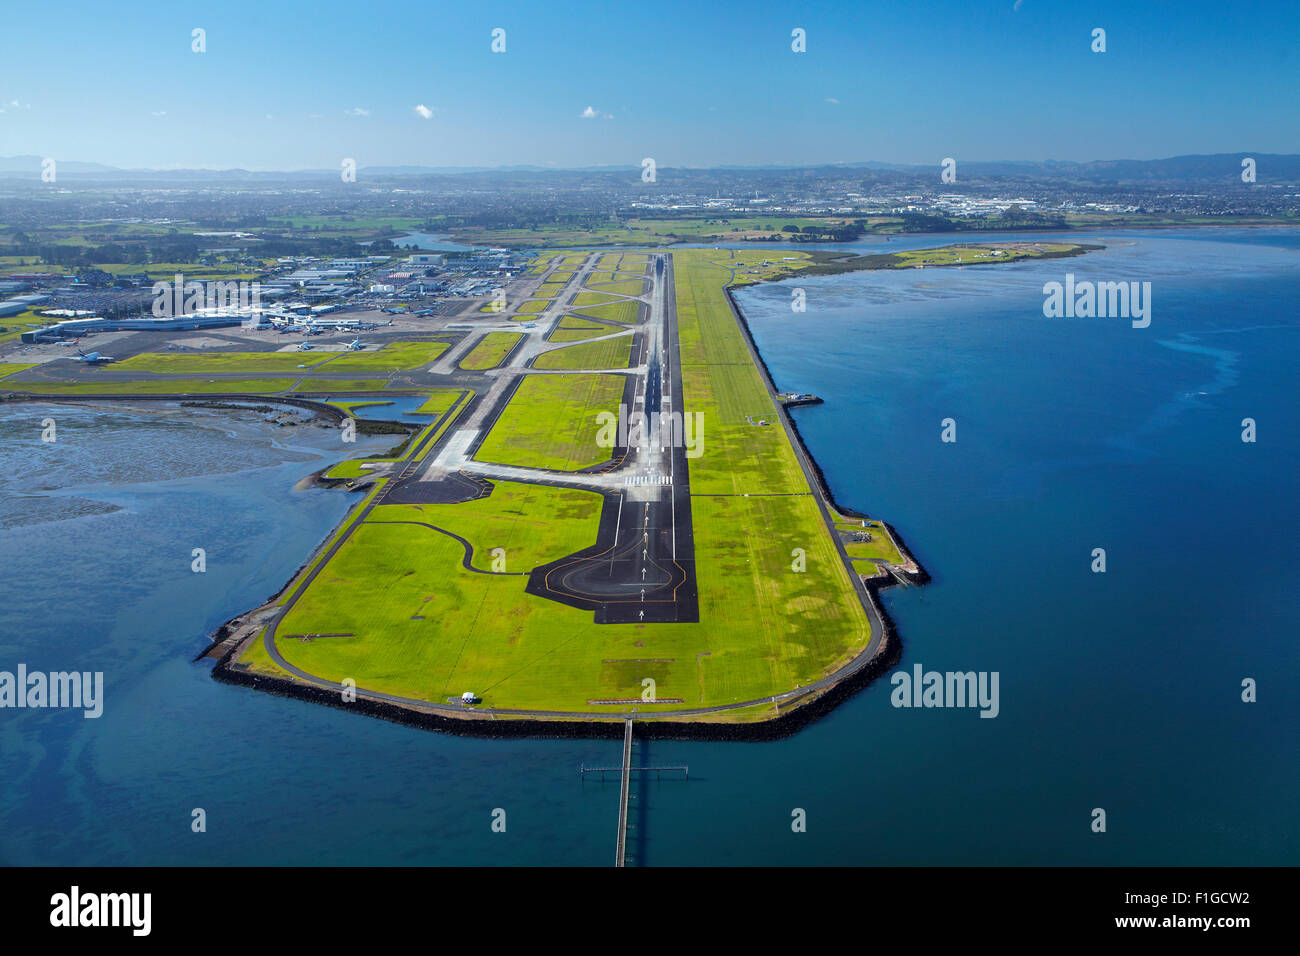 Runway at Auckland Airport, and Manukau Harbour, North Island, New Zealand - aerial - Stock Image